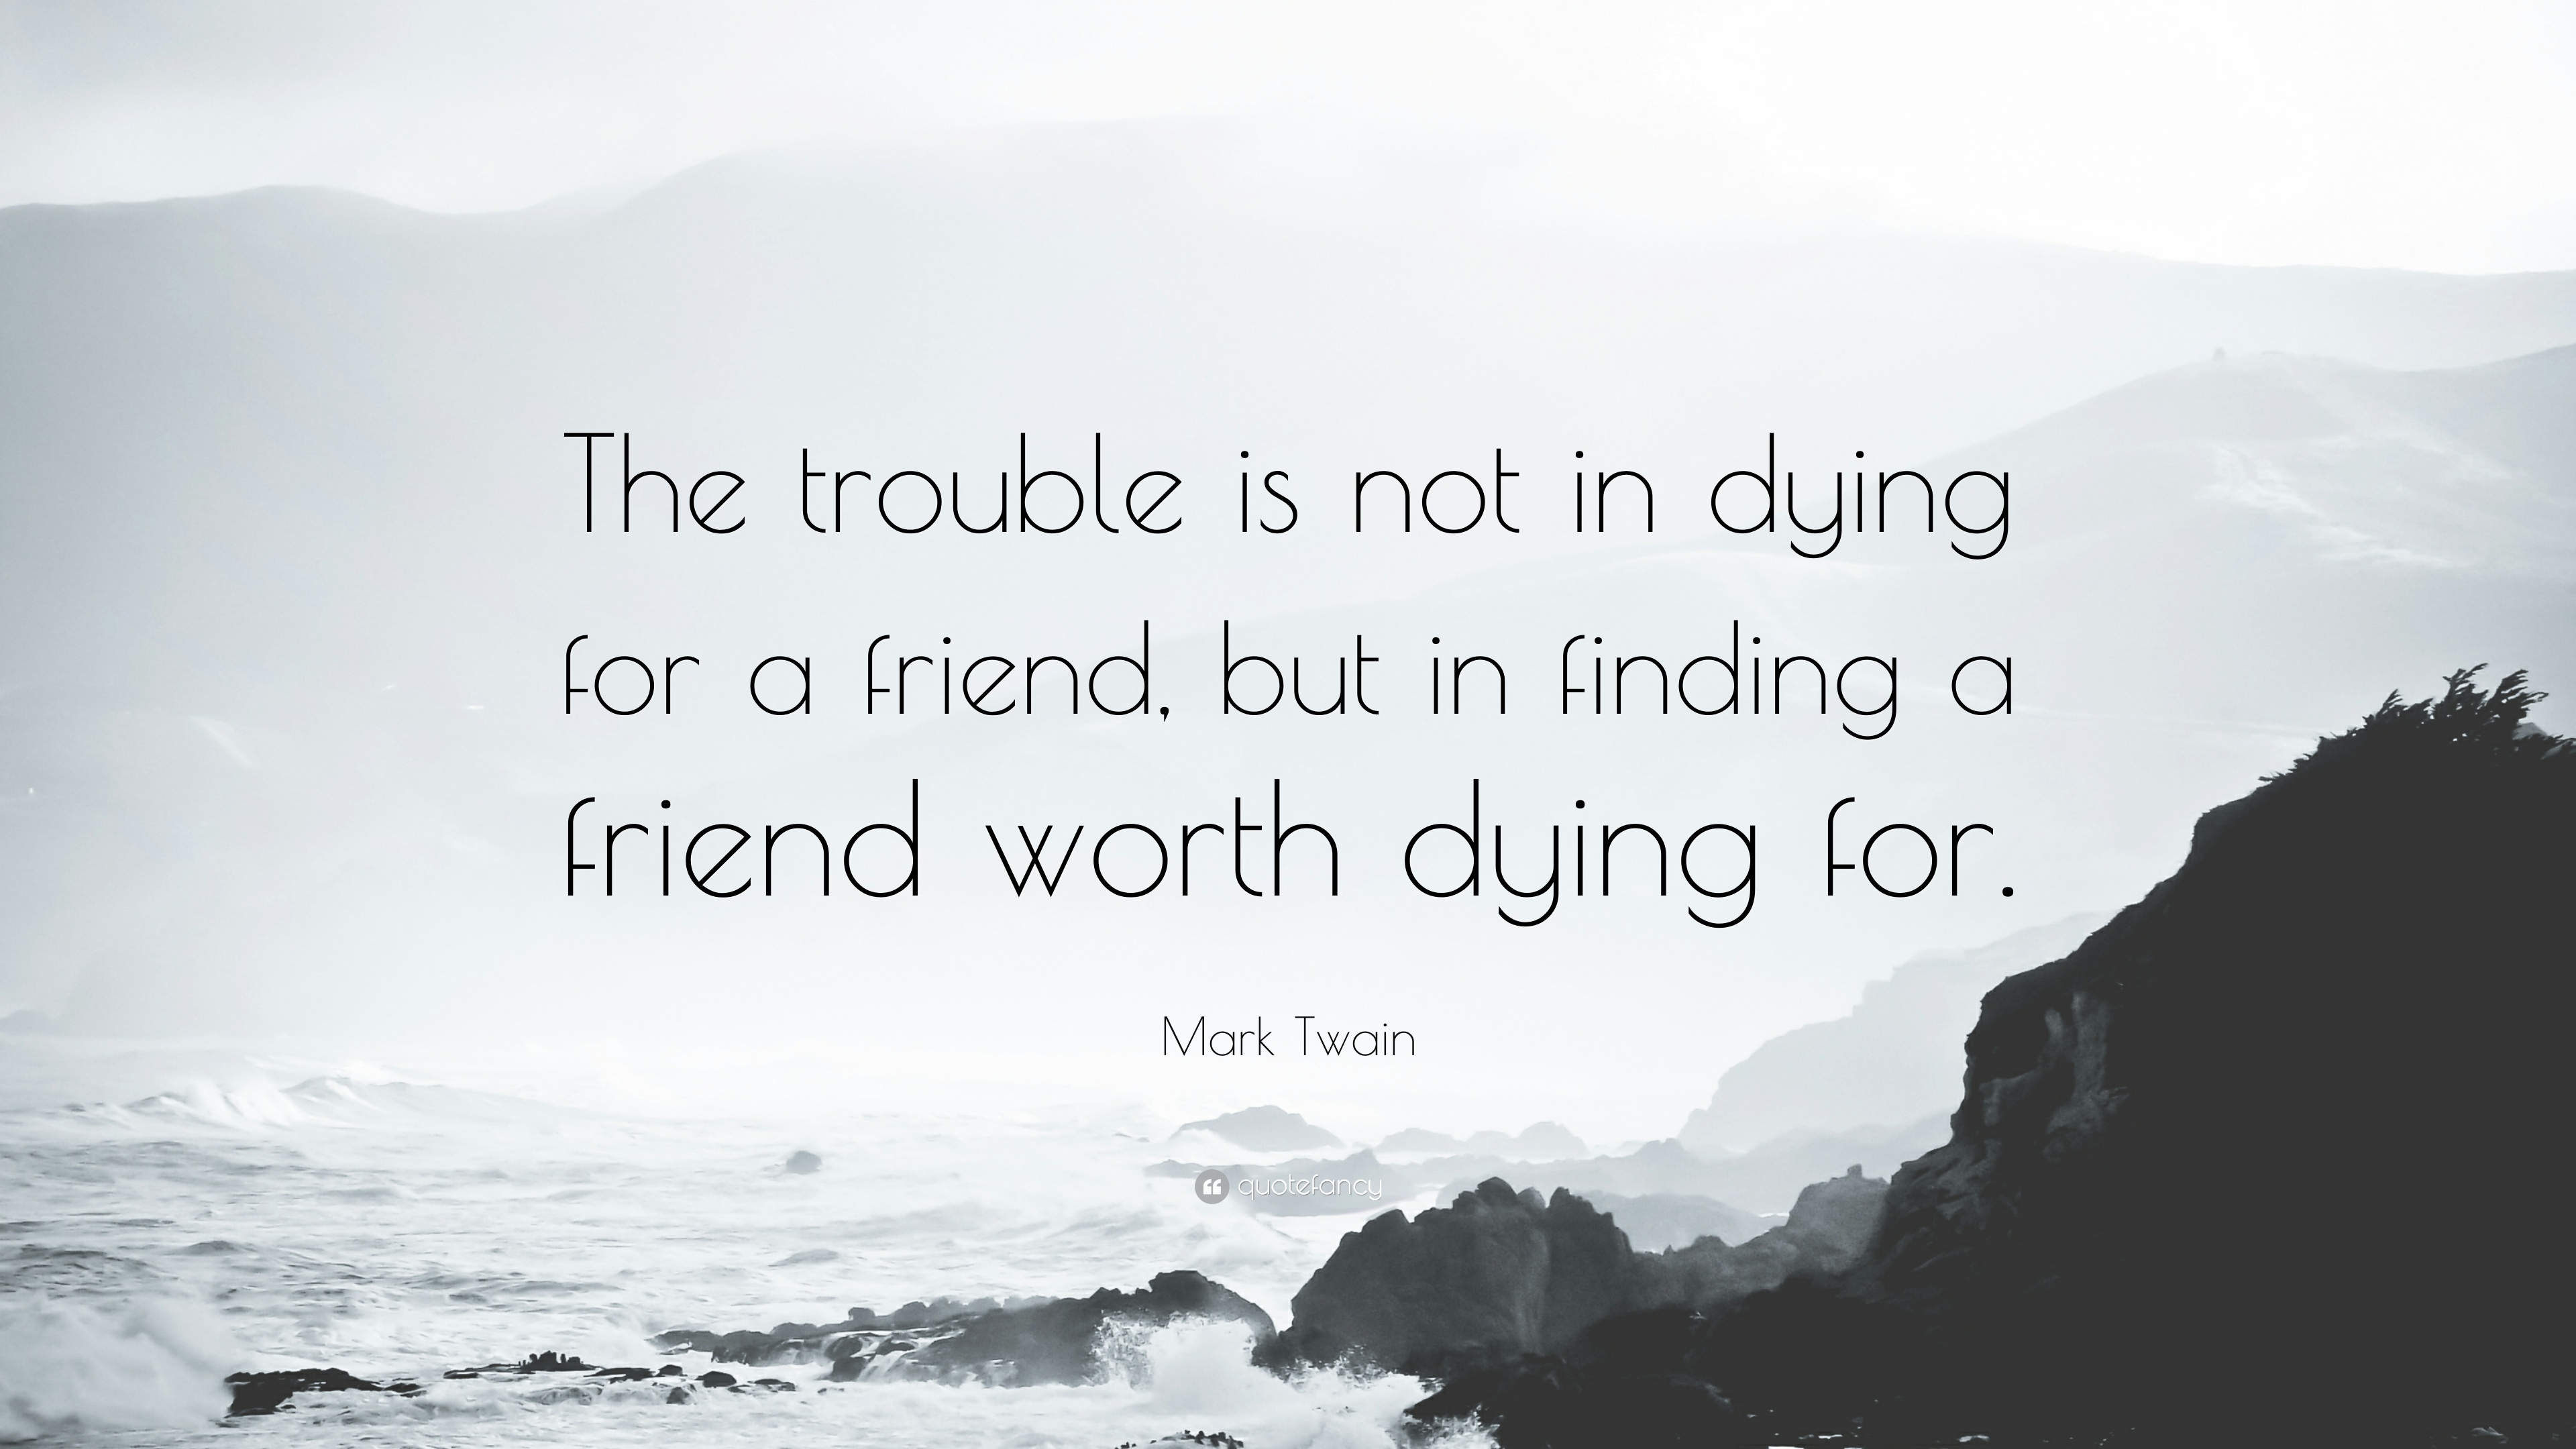 Quotes And Images About Friendship Friendship Quotes 21 Wallpapers  Quotefancy